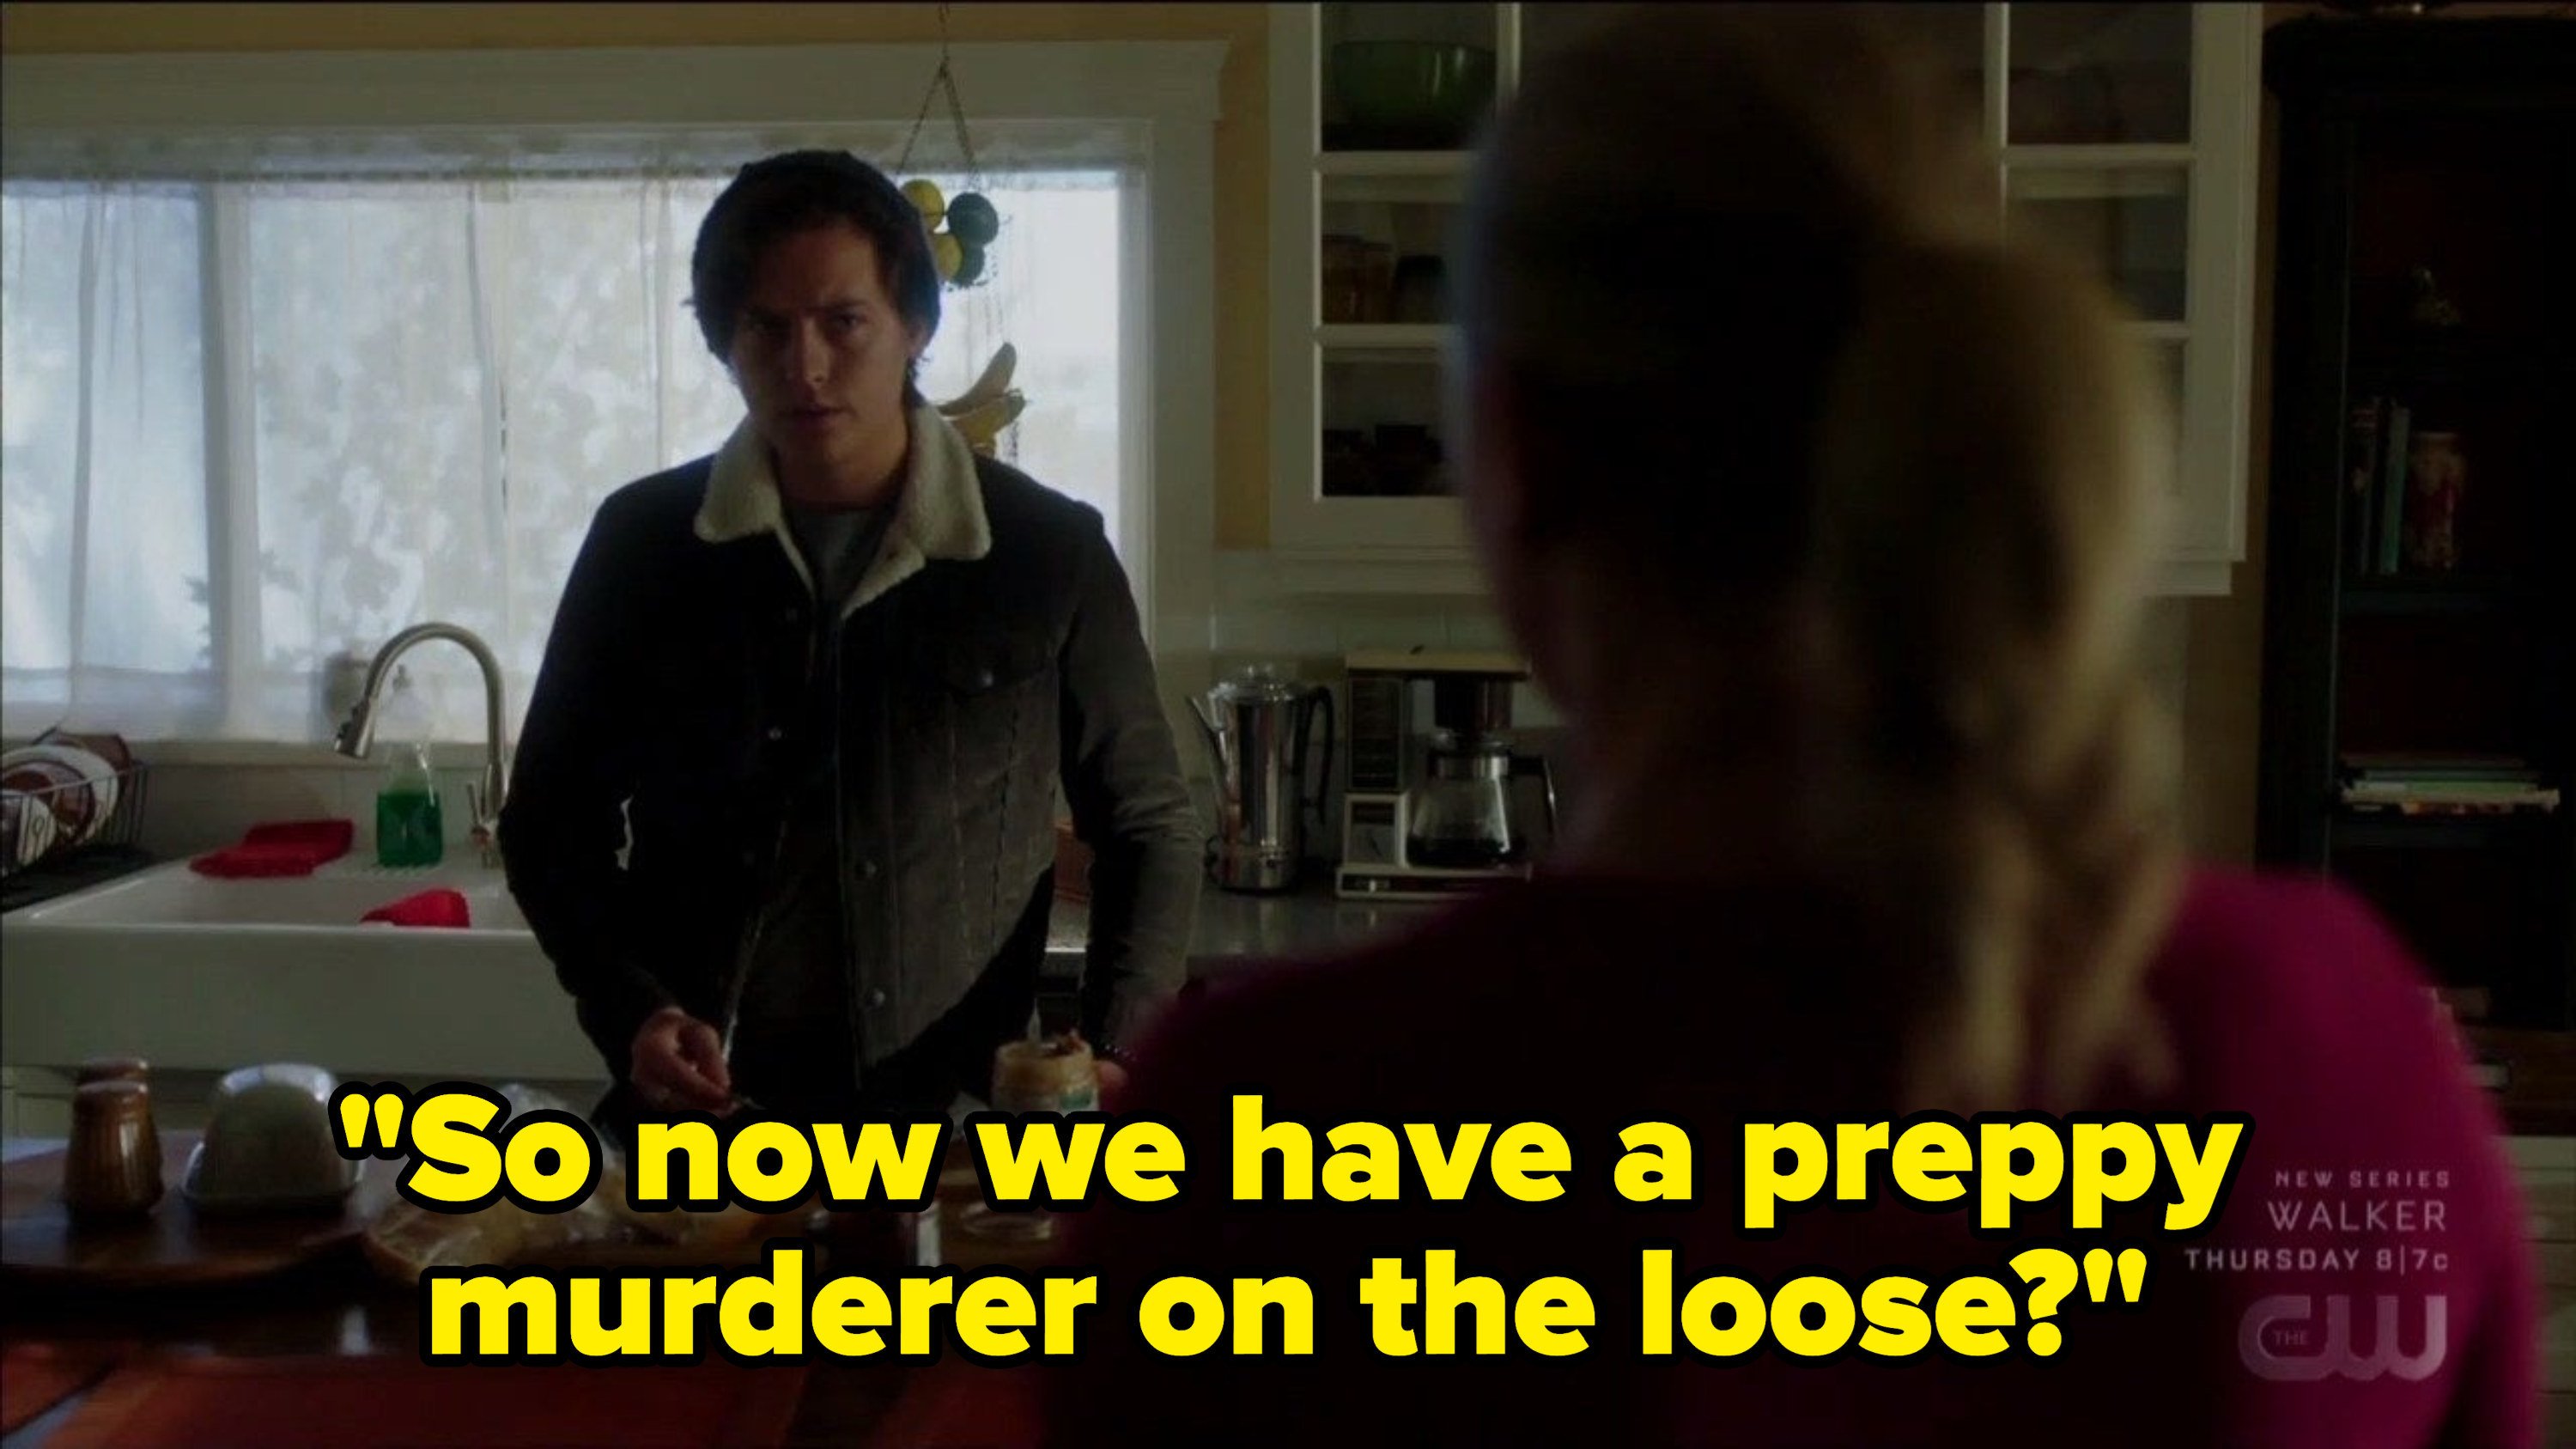 Jughead saying there's a preppy murderer on the loose